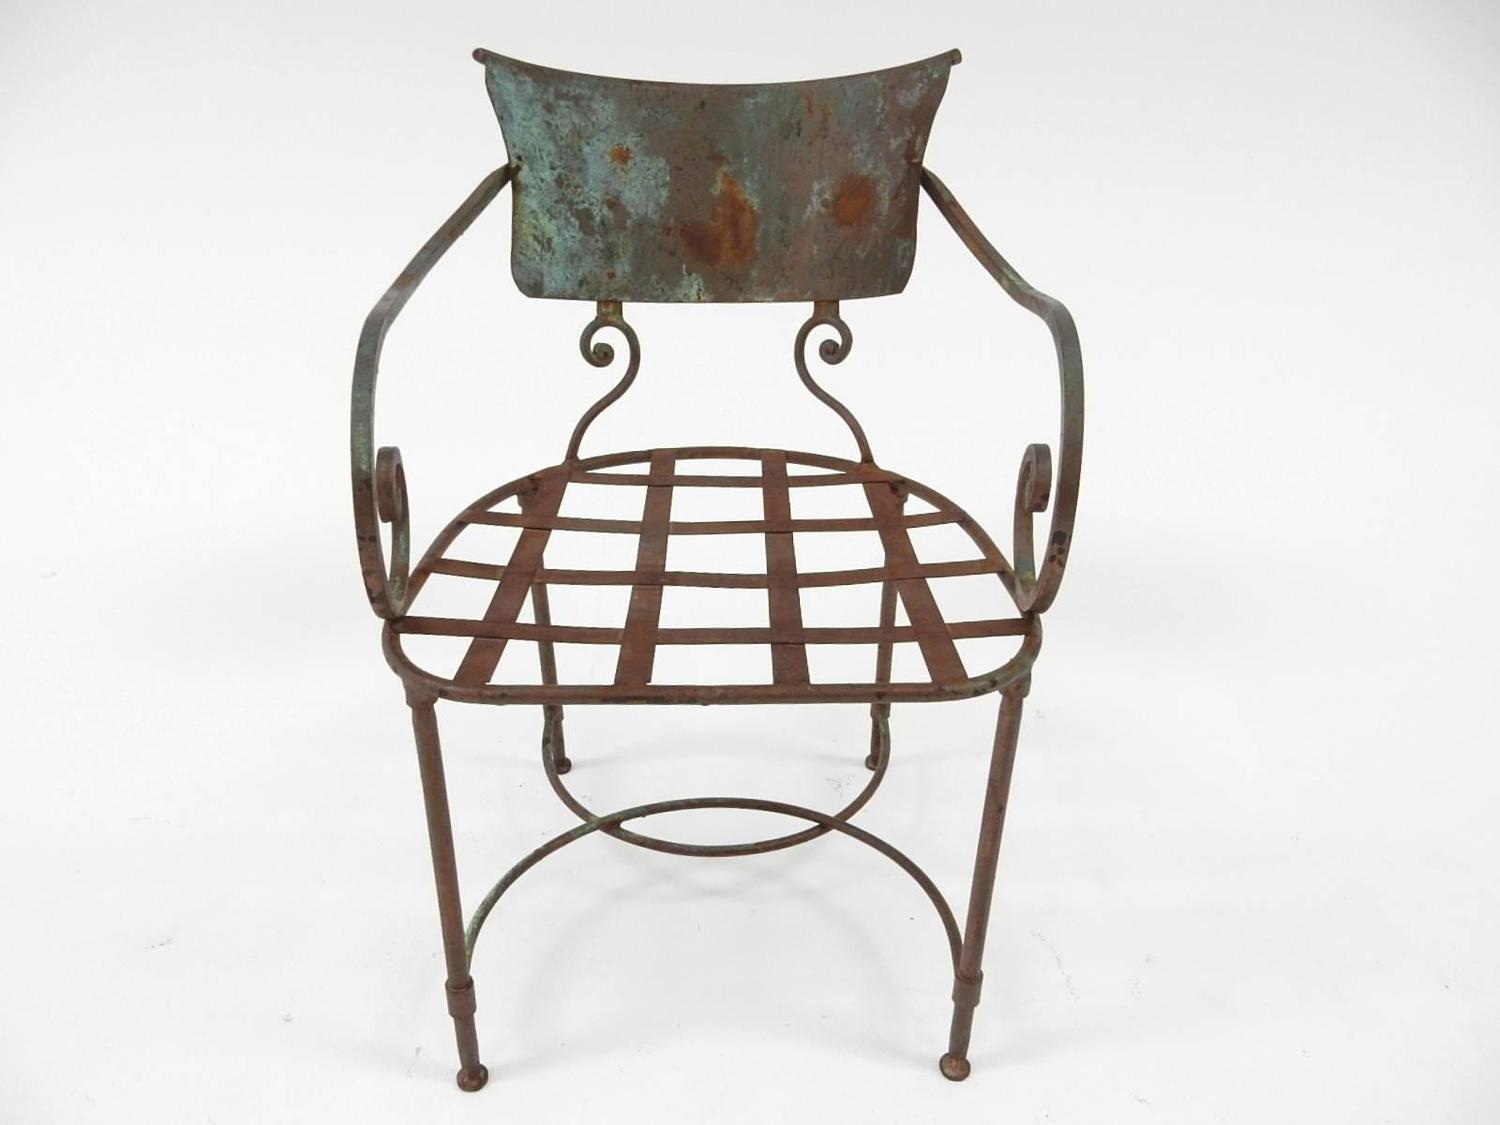 French Art Nouveau Sculptural Iron Garden Patio Chairs For Sale At 1stdibs